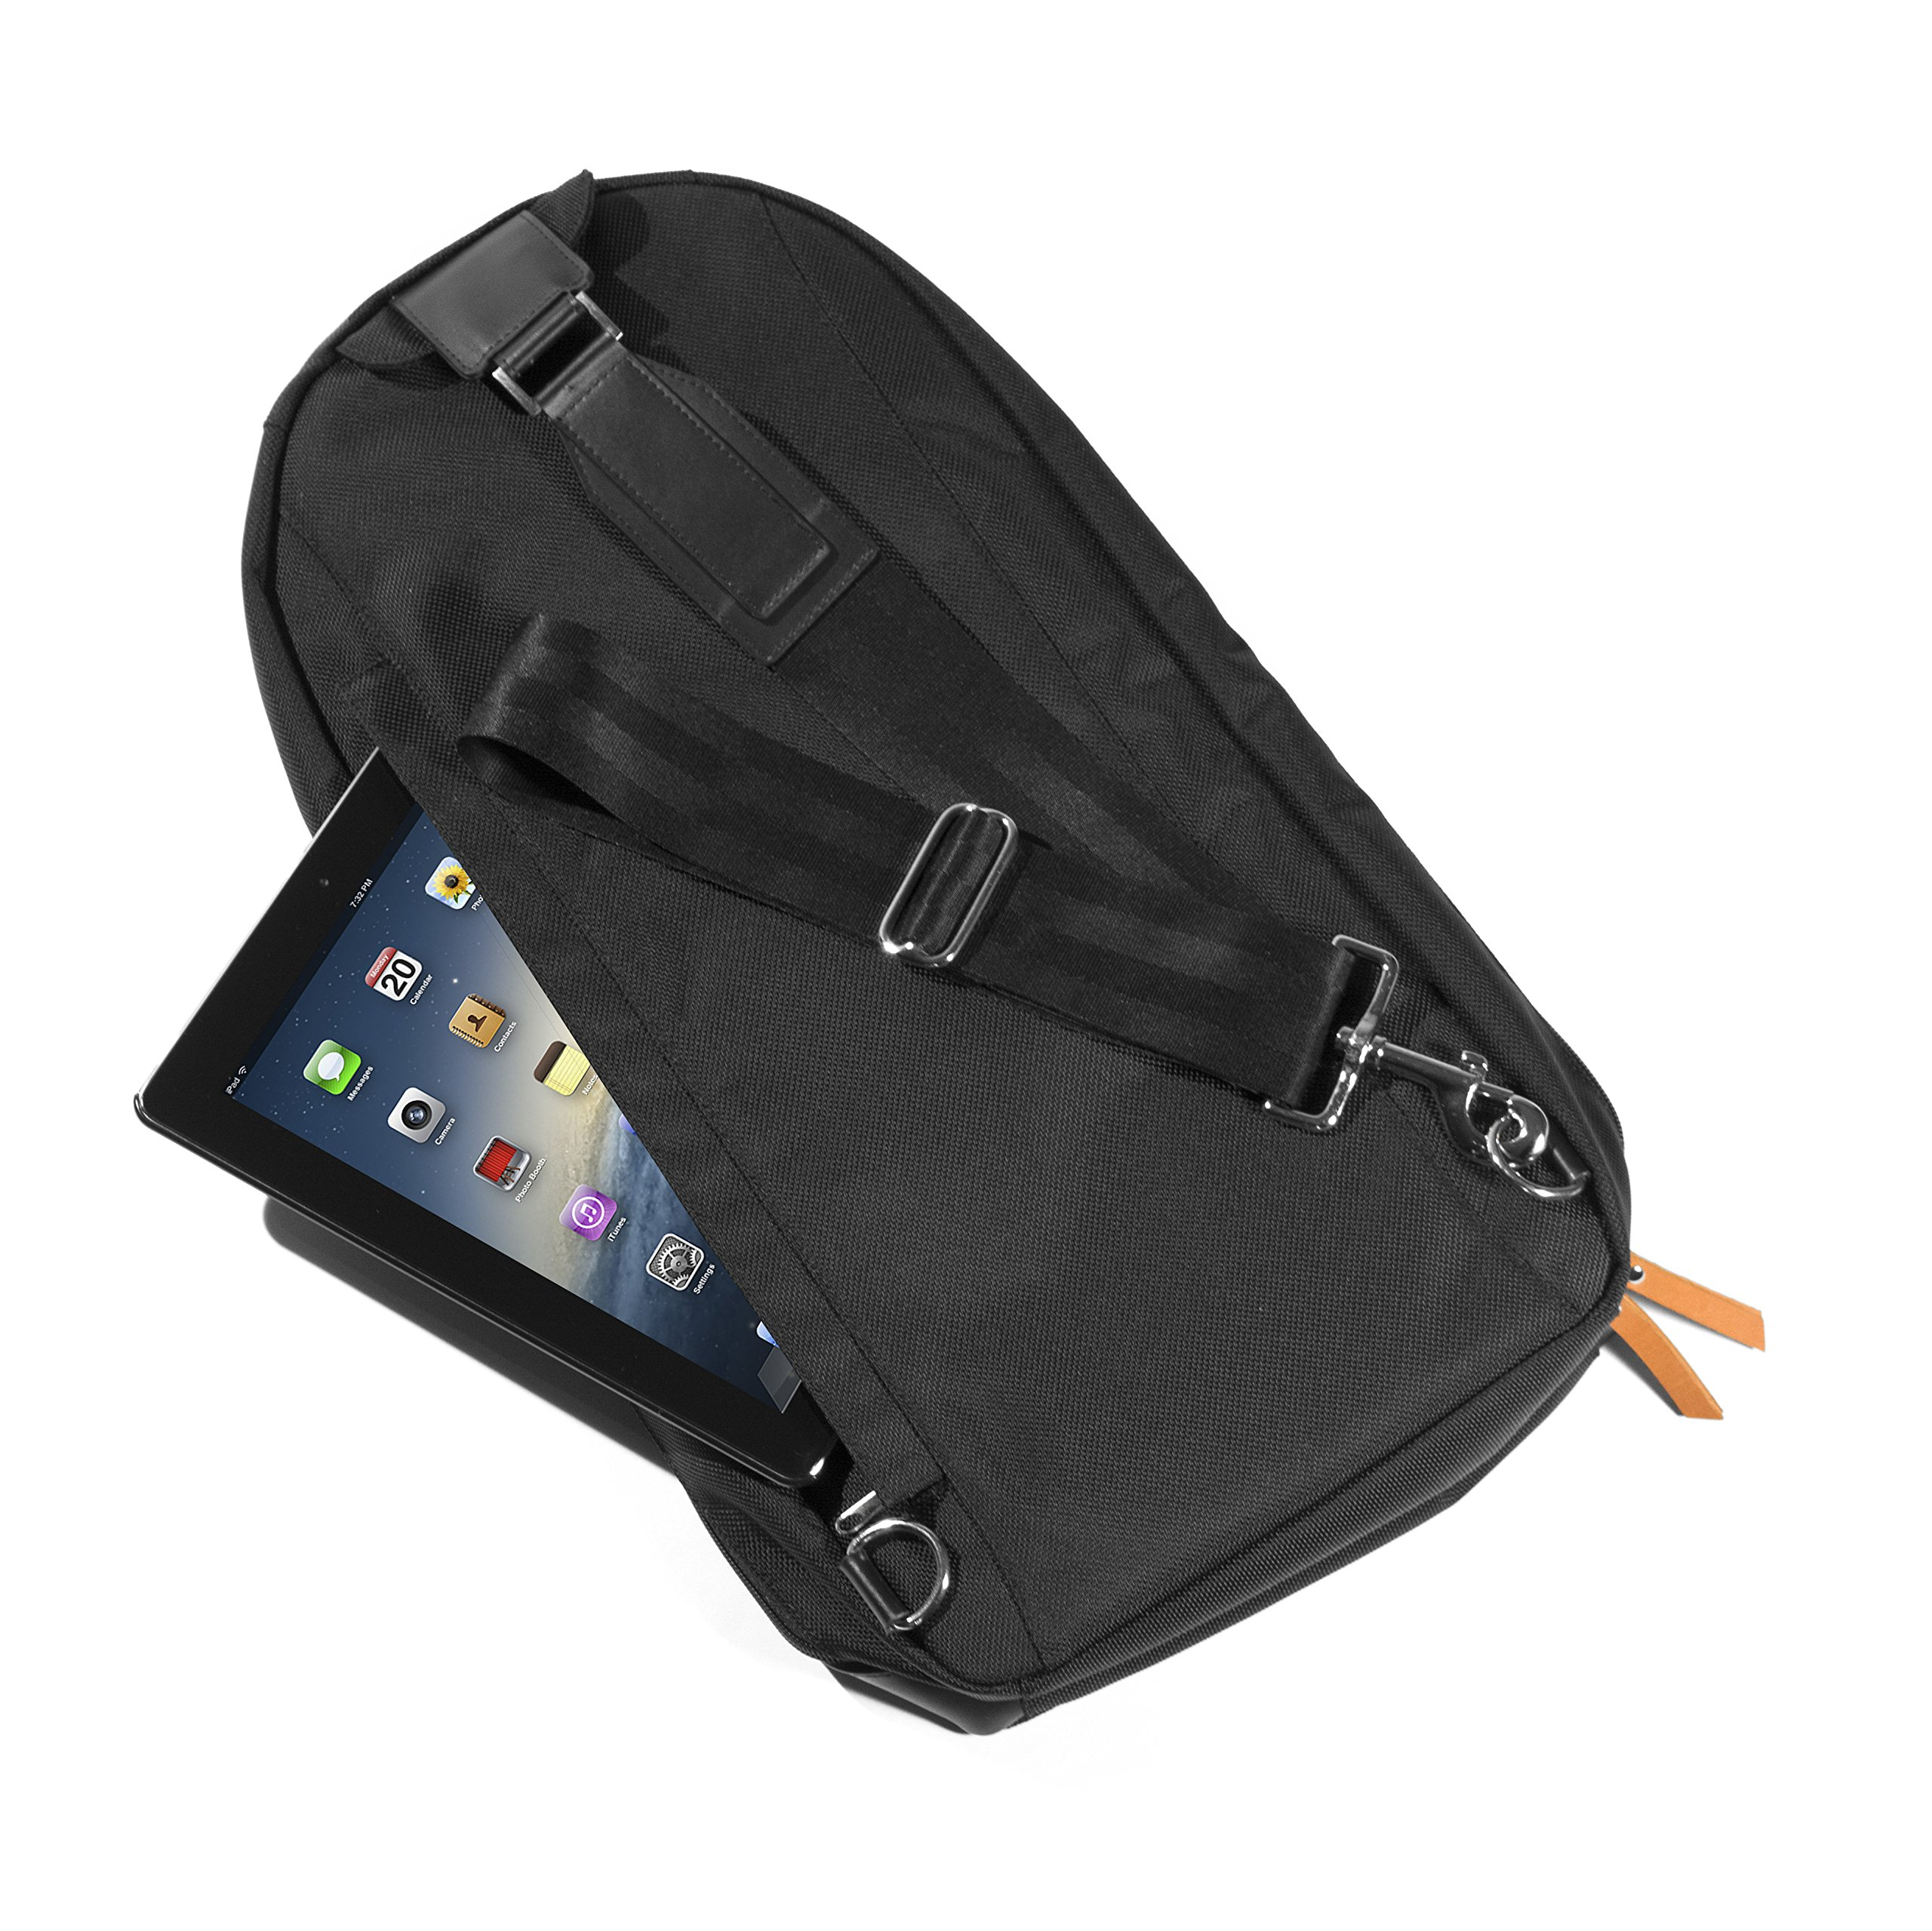 M(sqd) Roundsman Chef Knife Bag, Holds 17 Knives and Utensils with 3 Pockets for Tablet and Notebook by M(sqd) (Image #3)